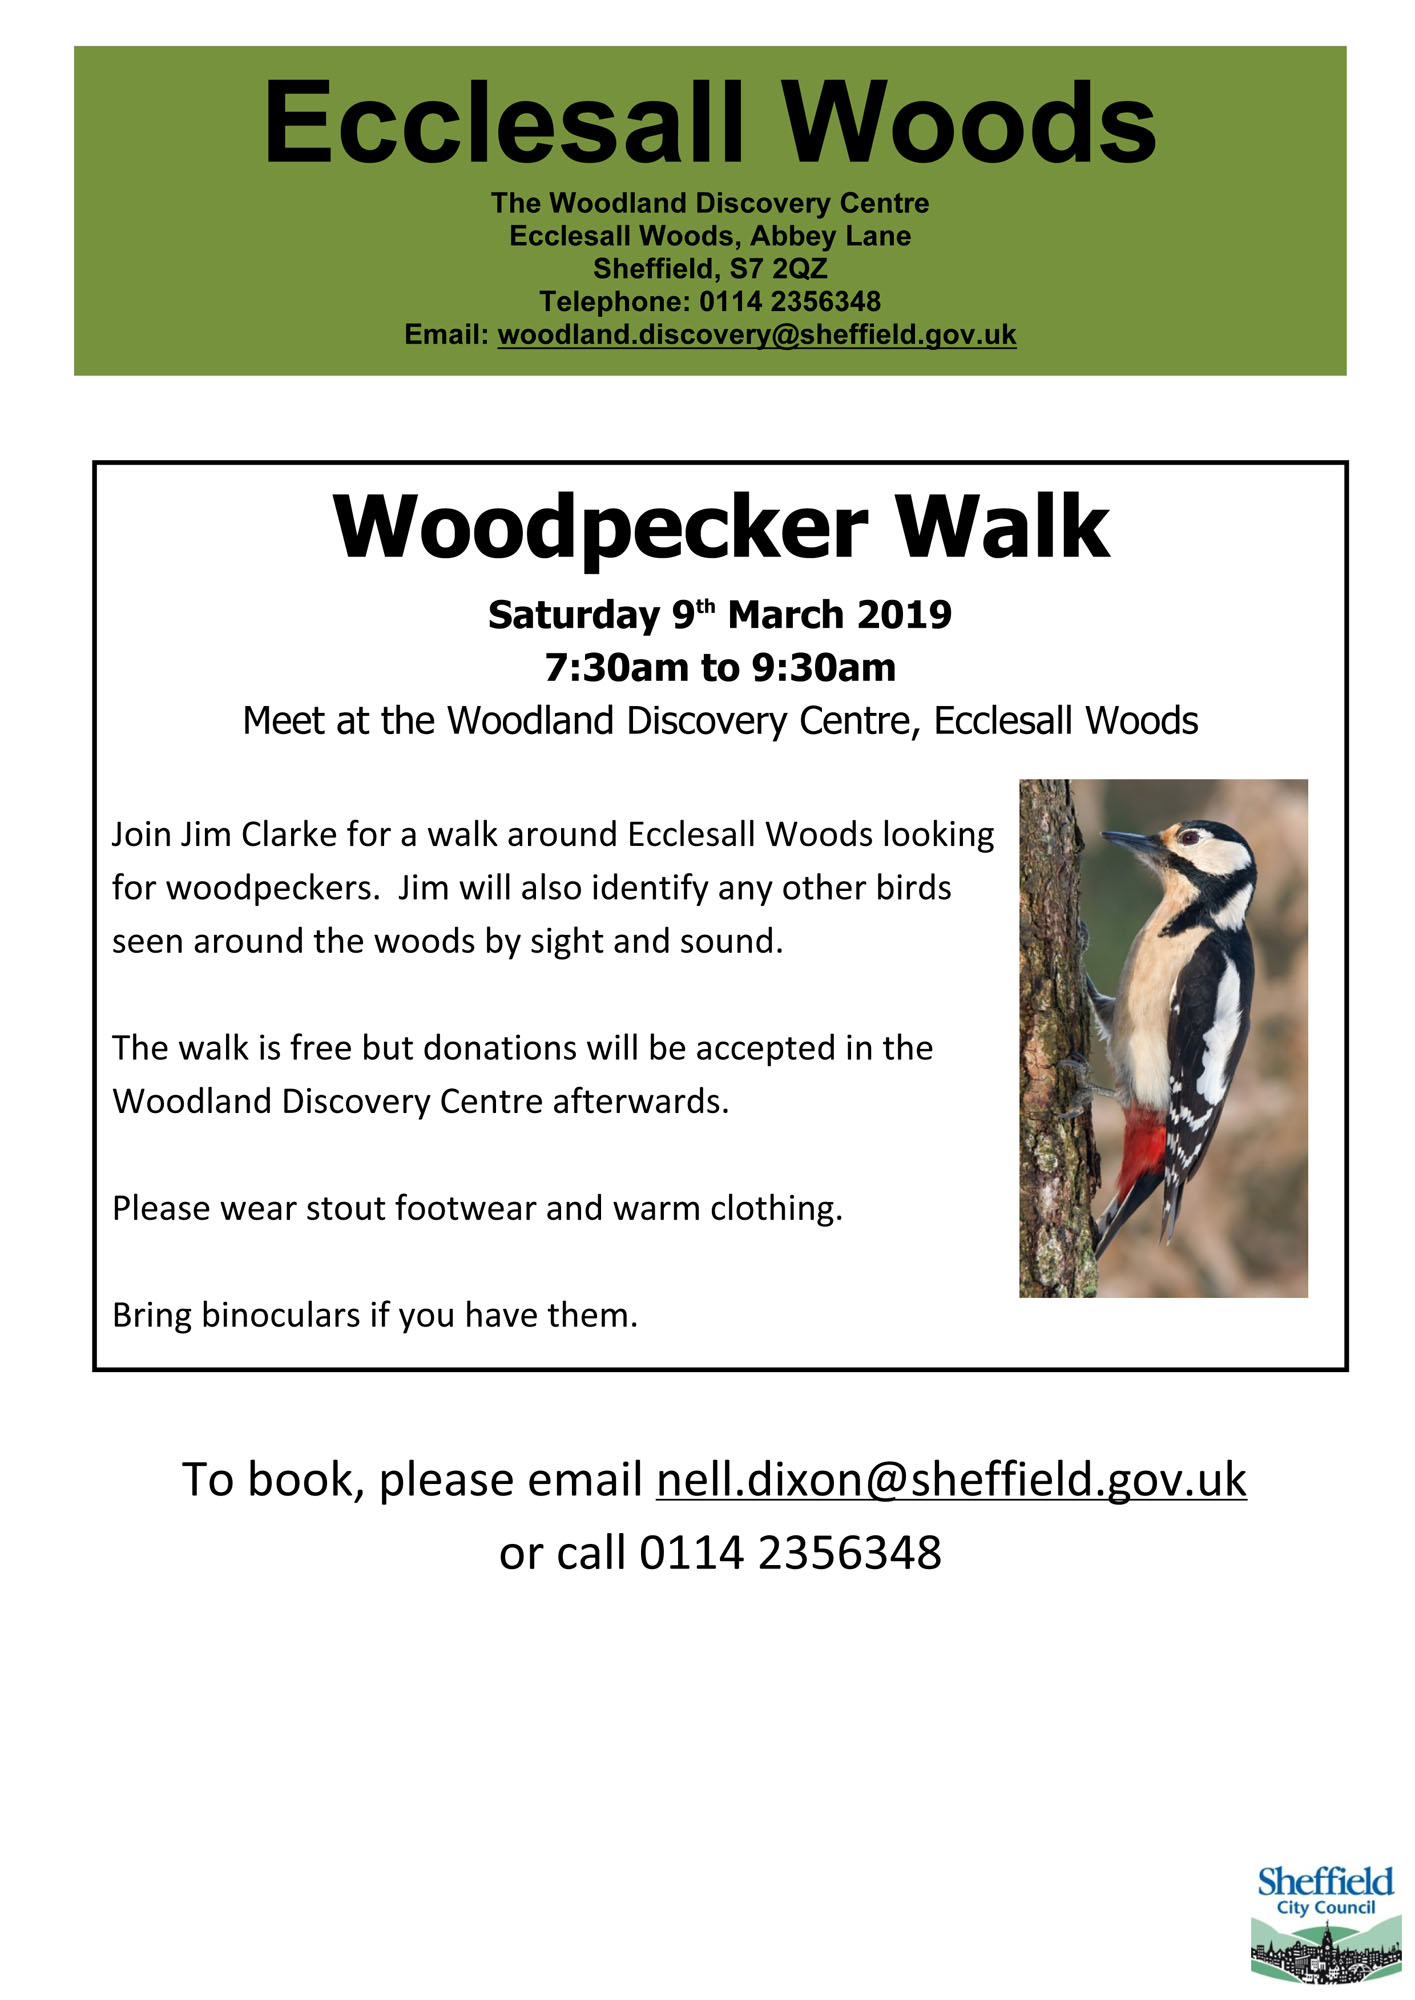 Woodpecker walk on Saturday 9th March